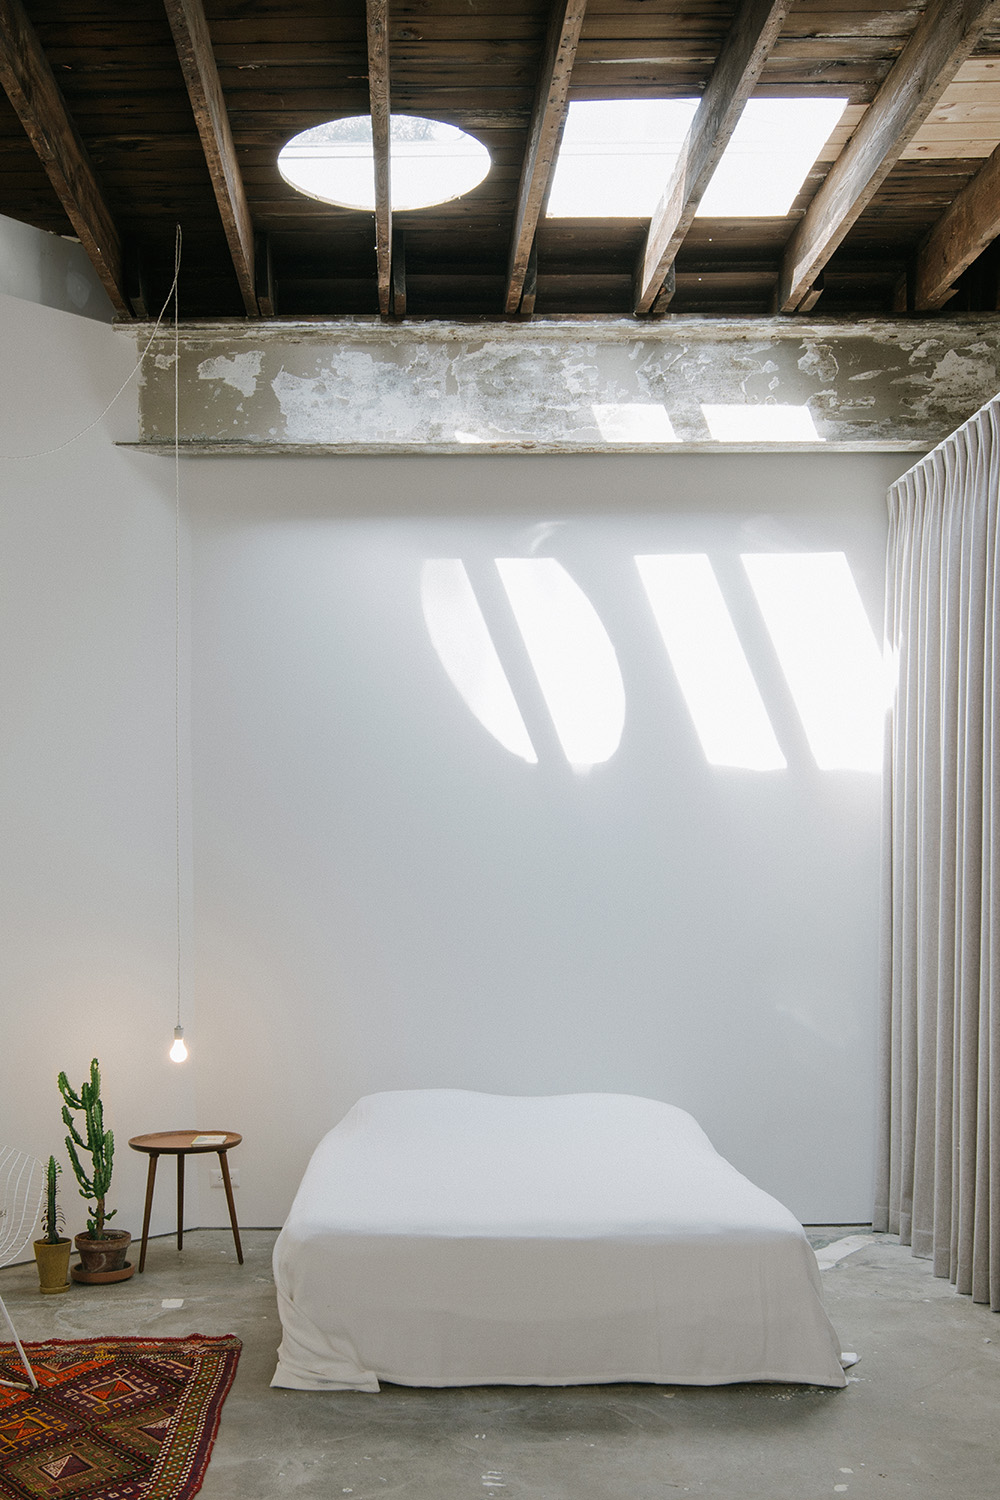 Photograph showing main bedroom space with new toplights. The original structure - the joists - were not cut for the skylight installation. Florian Holzherr